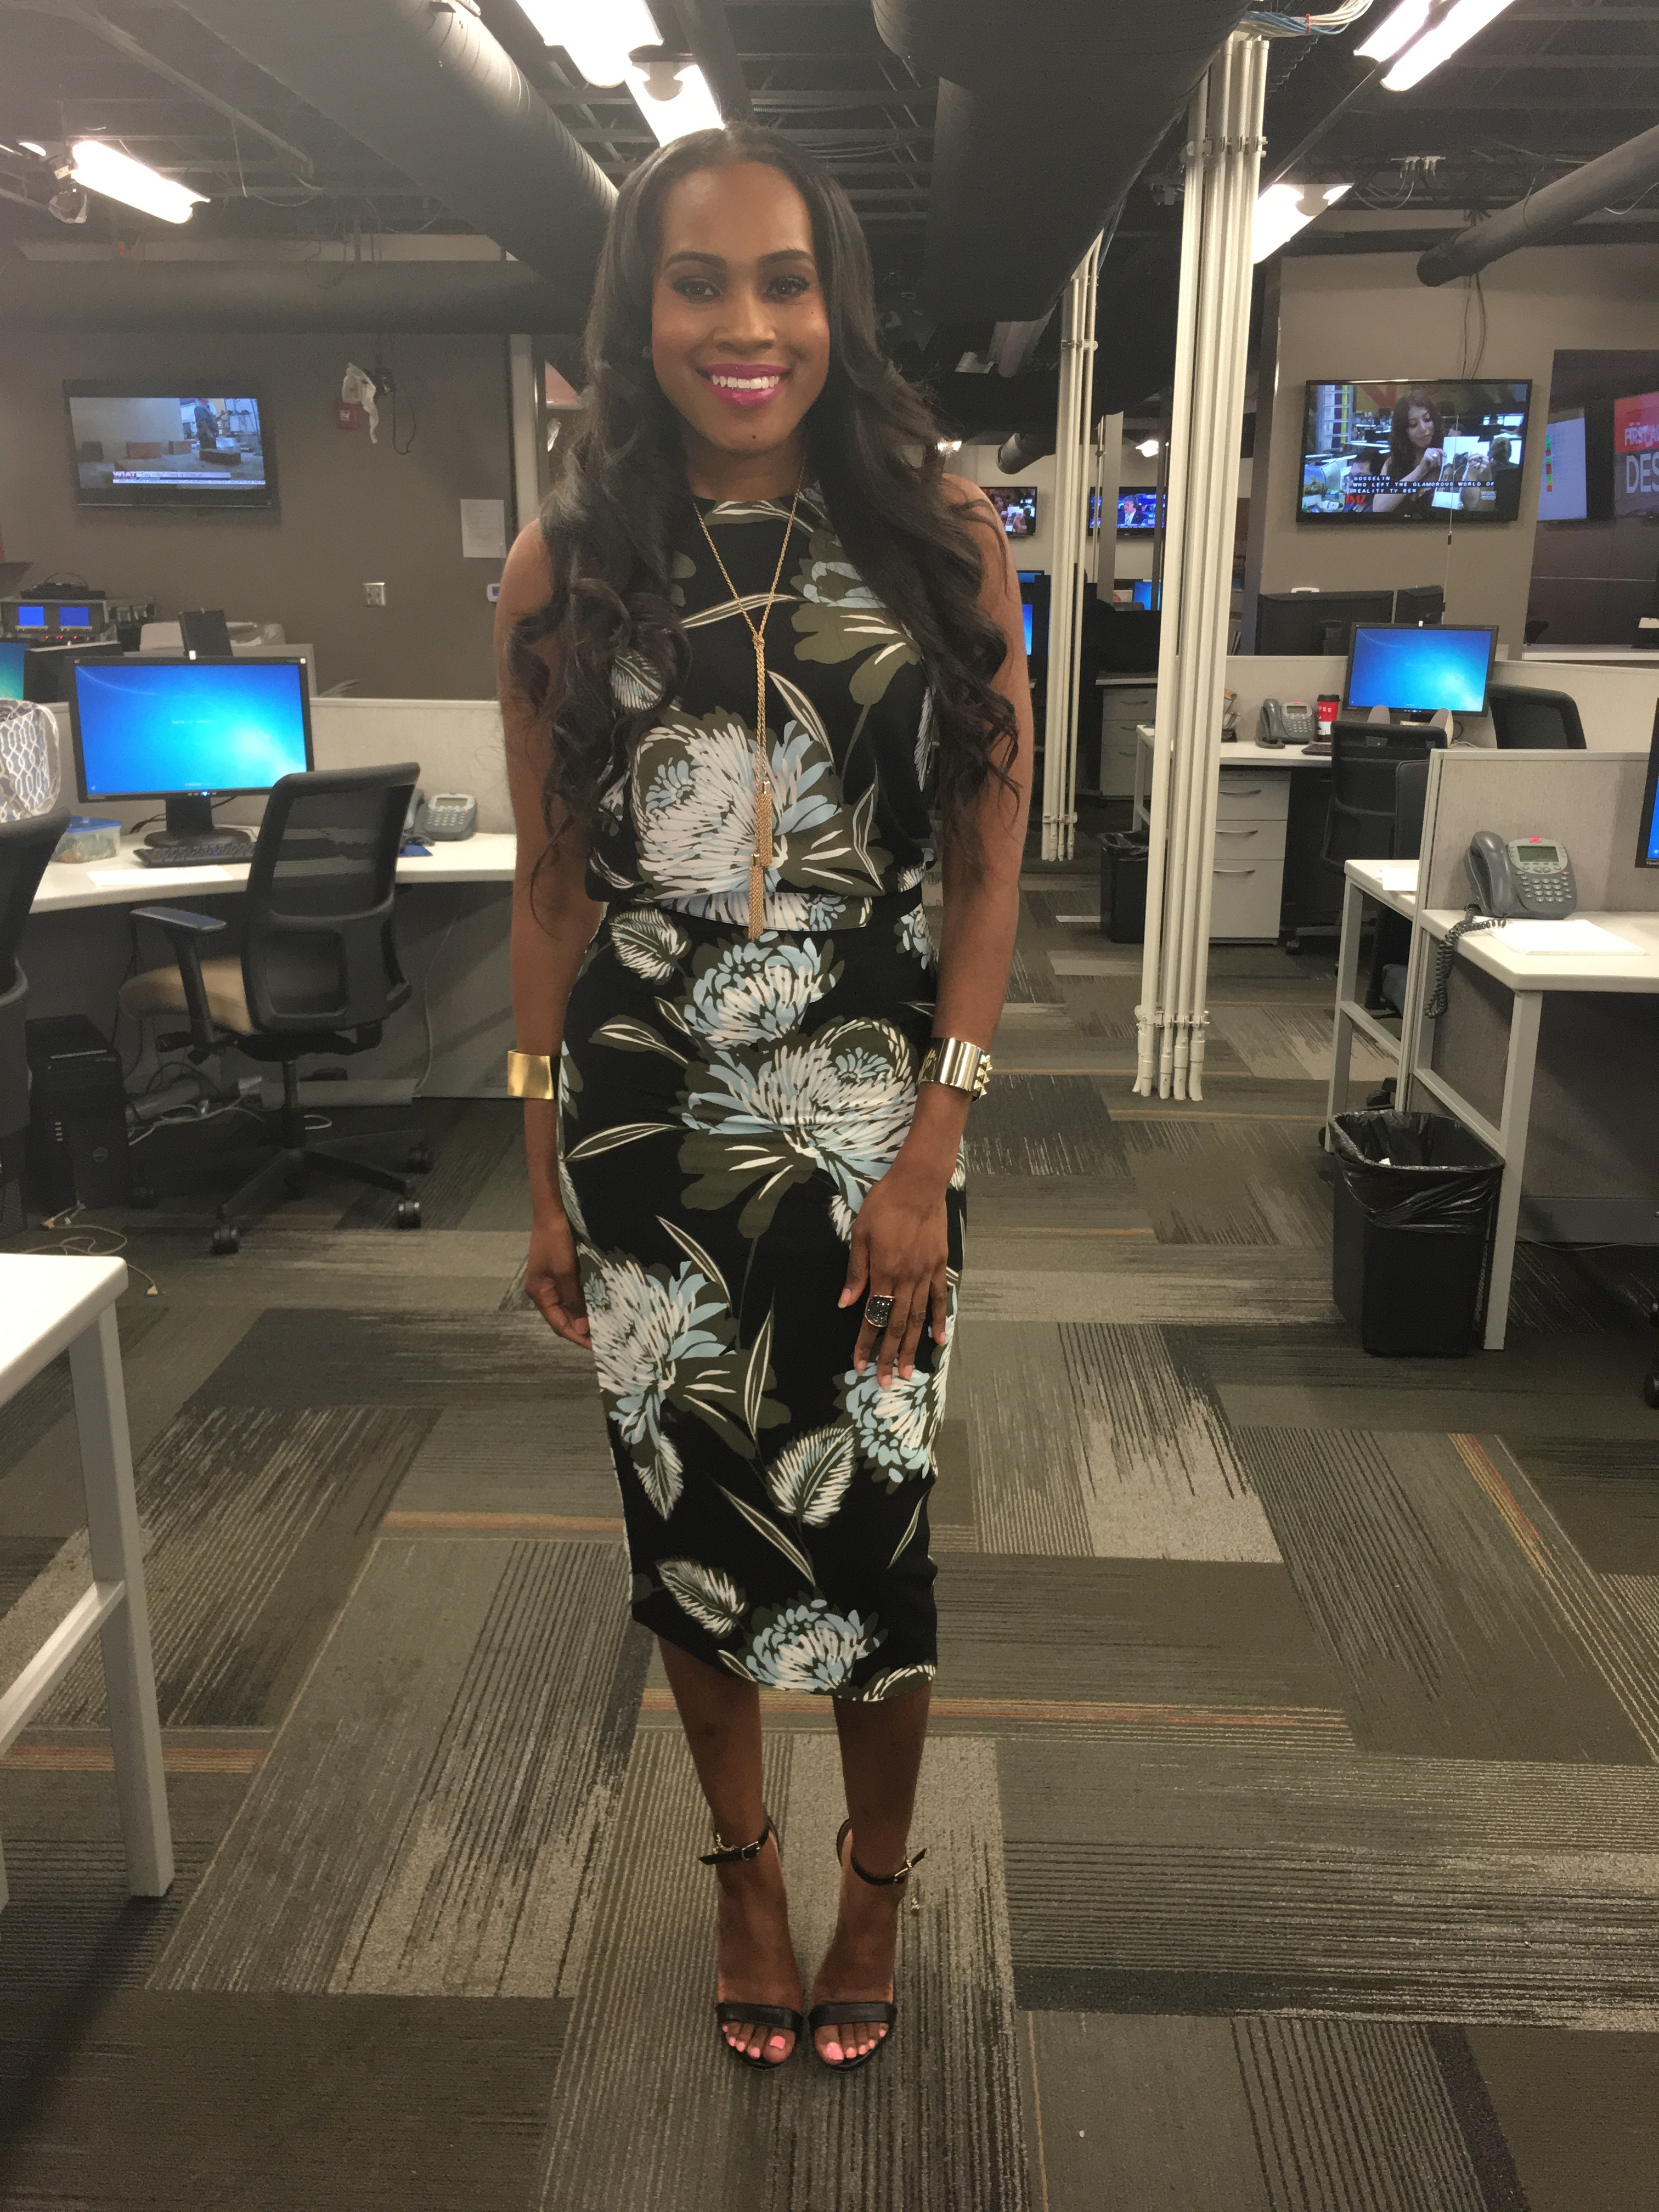 Style-files-who-what-wear-target-collection-black-floral-midi-pencil-skirt-who-what-wear-black-floral-button-back-top-what-to-wear-to-work-tv-news-reporter-fashion-style-oohlalablog-JPG